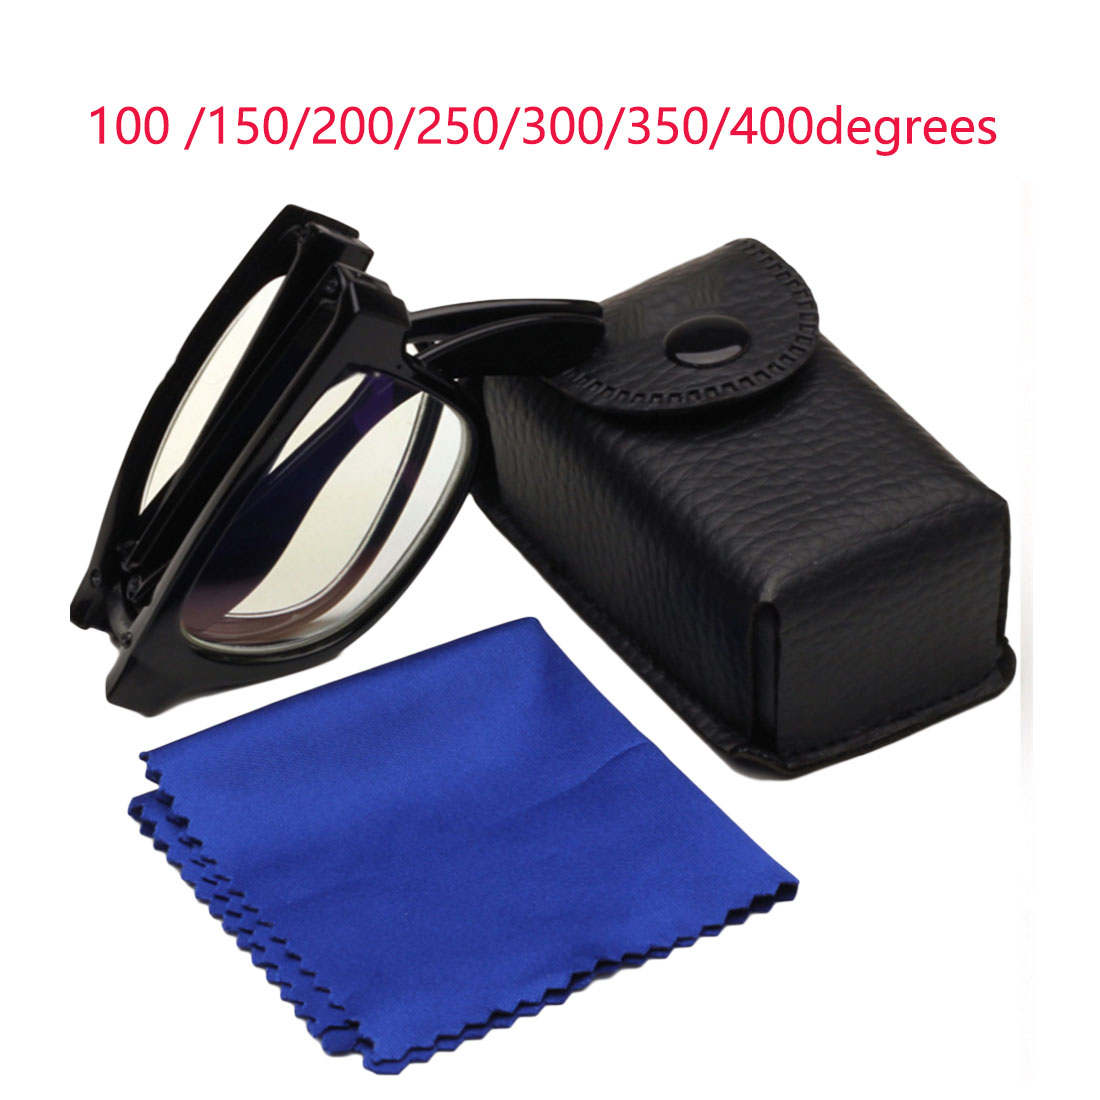 1PC Vision Glasses Magnifier Magnifying Eyewear Reading Glasses Portable Gift For Parents Presbyopic Magnification100-400 Degree